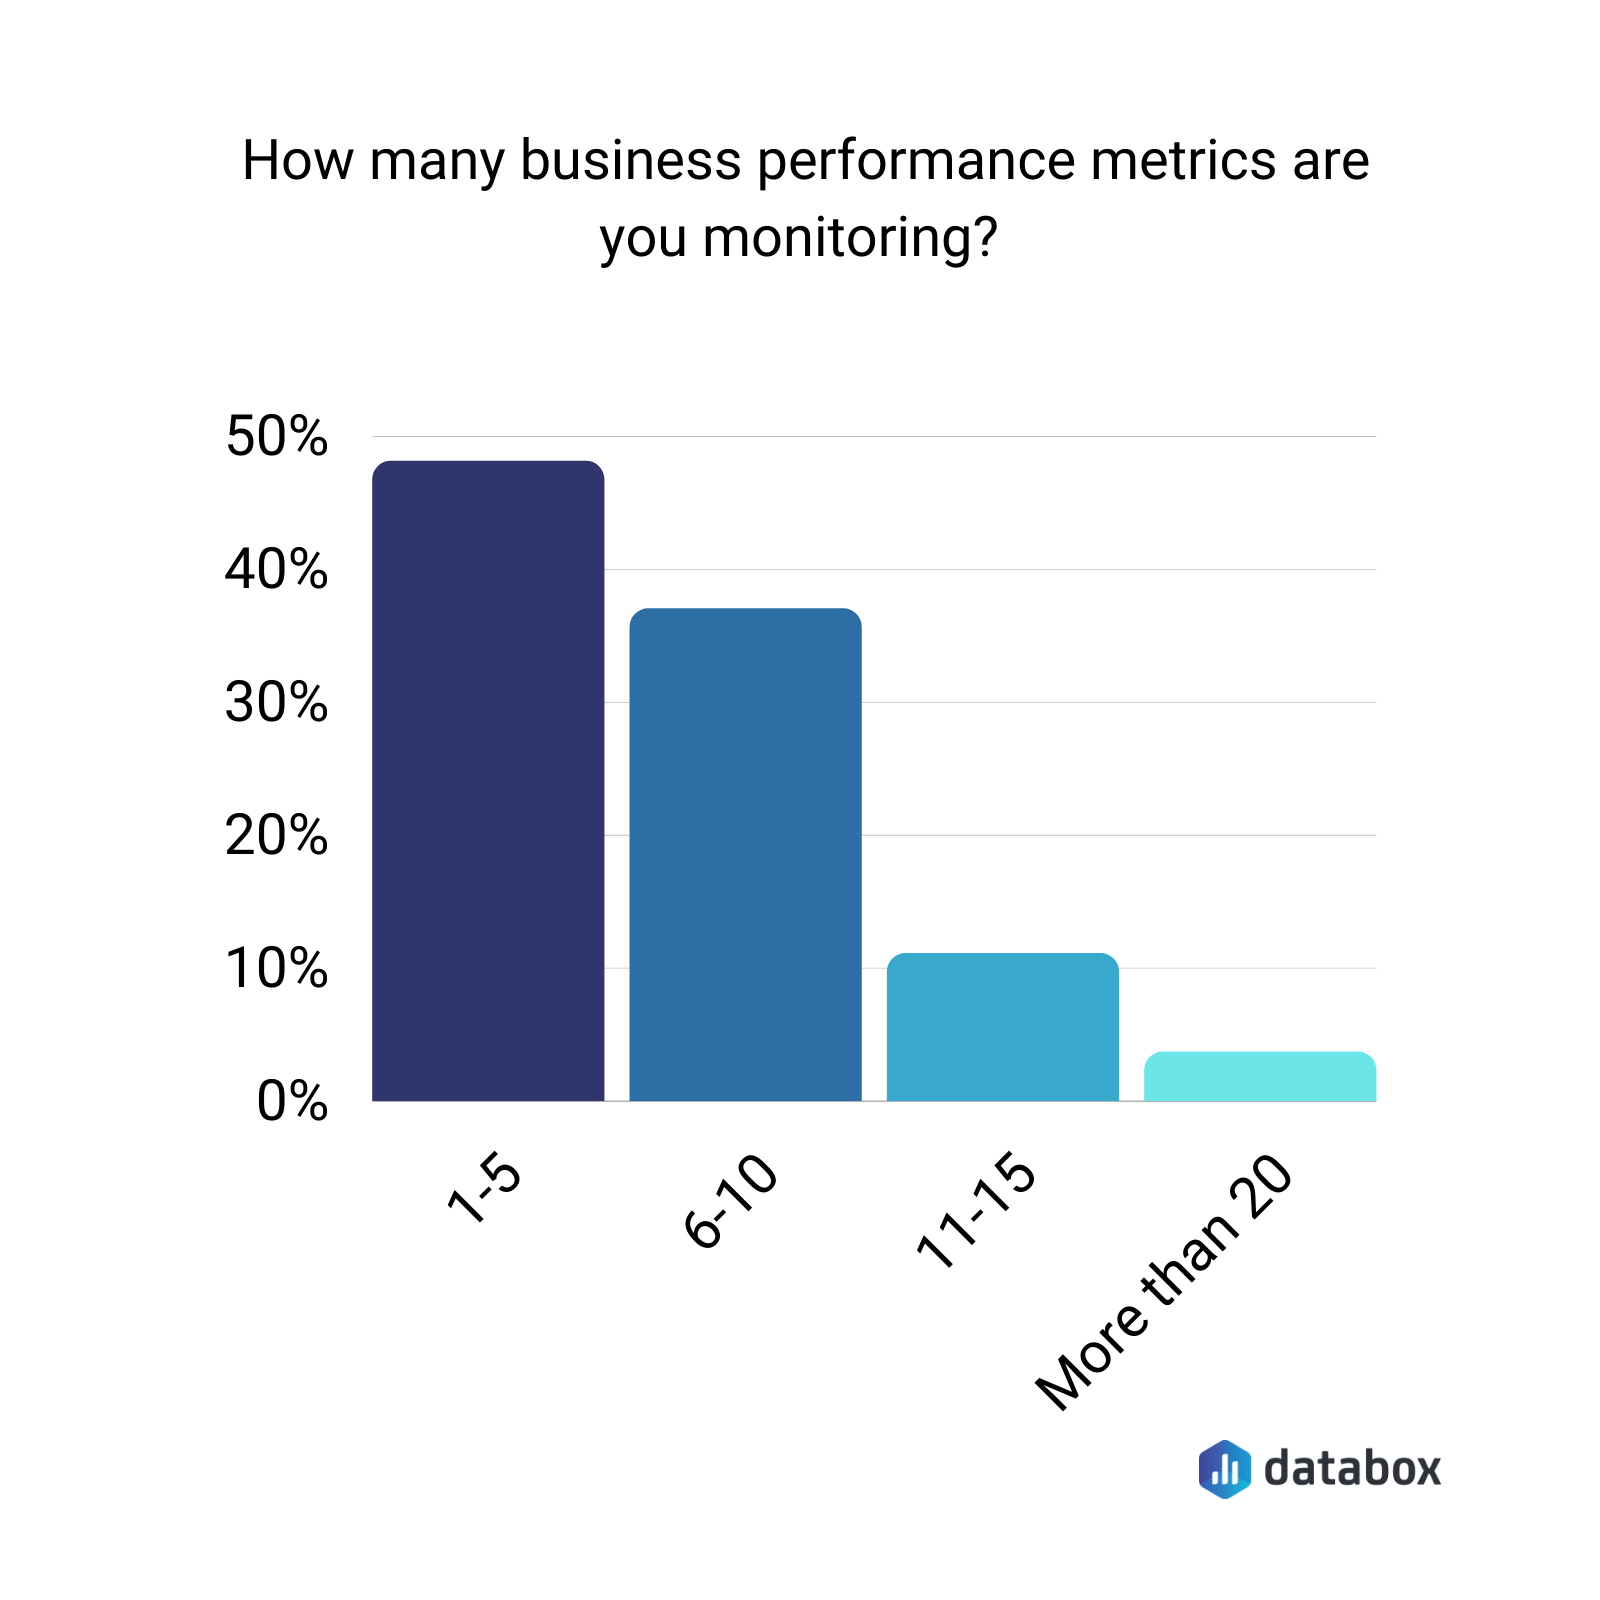 How many business performance metrics are you monitoring?